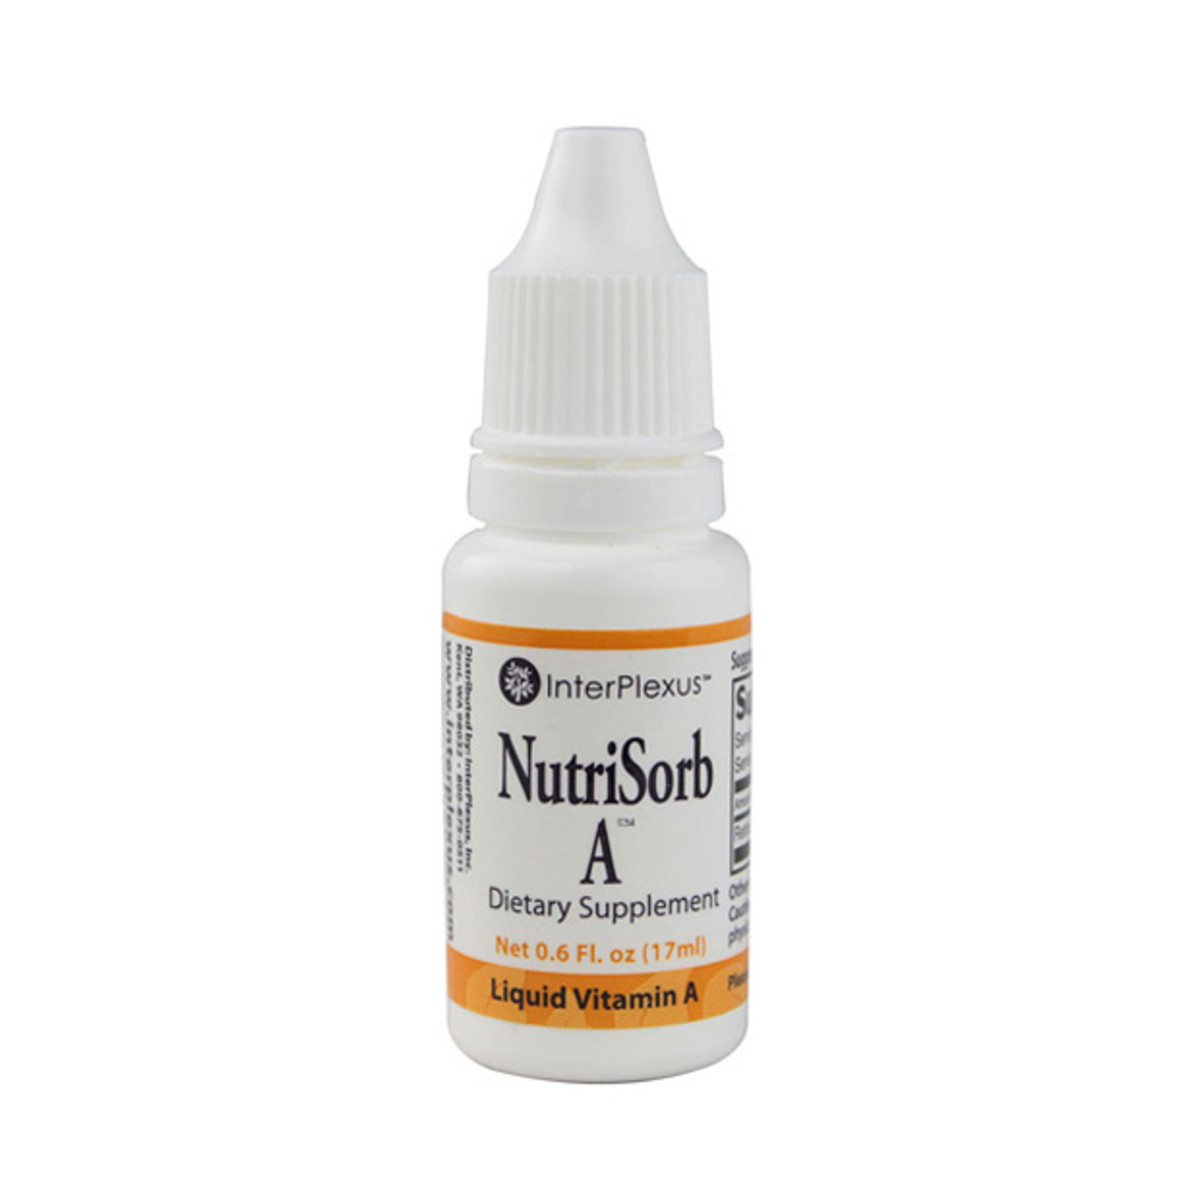 InterPlexus NutriSorb A Liquid Vitamin A